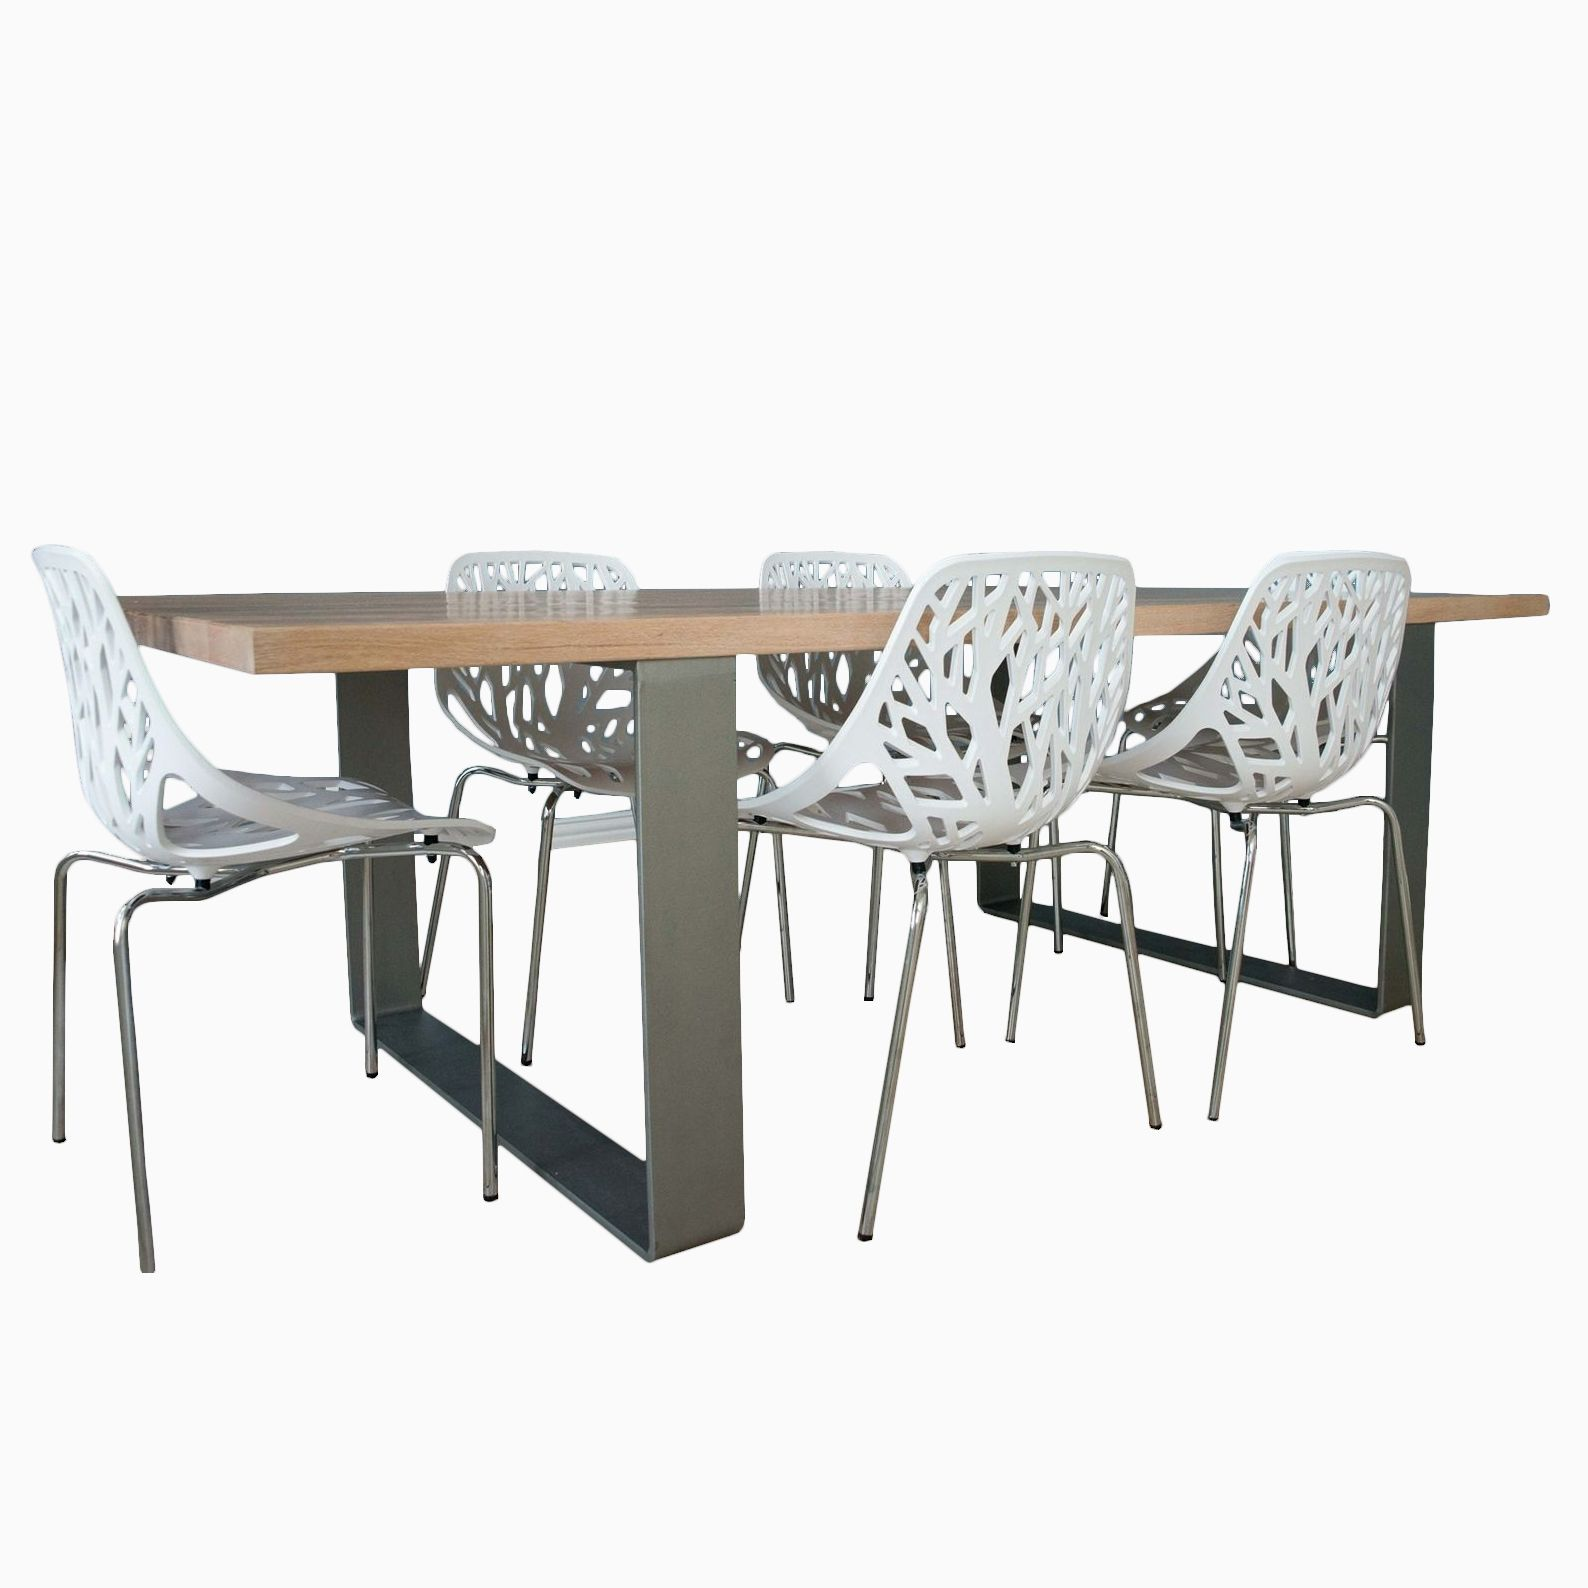 buy handmade oak dining room table with iron legs made to